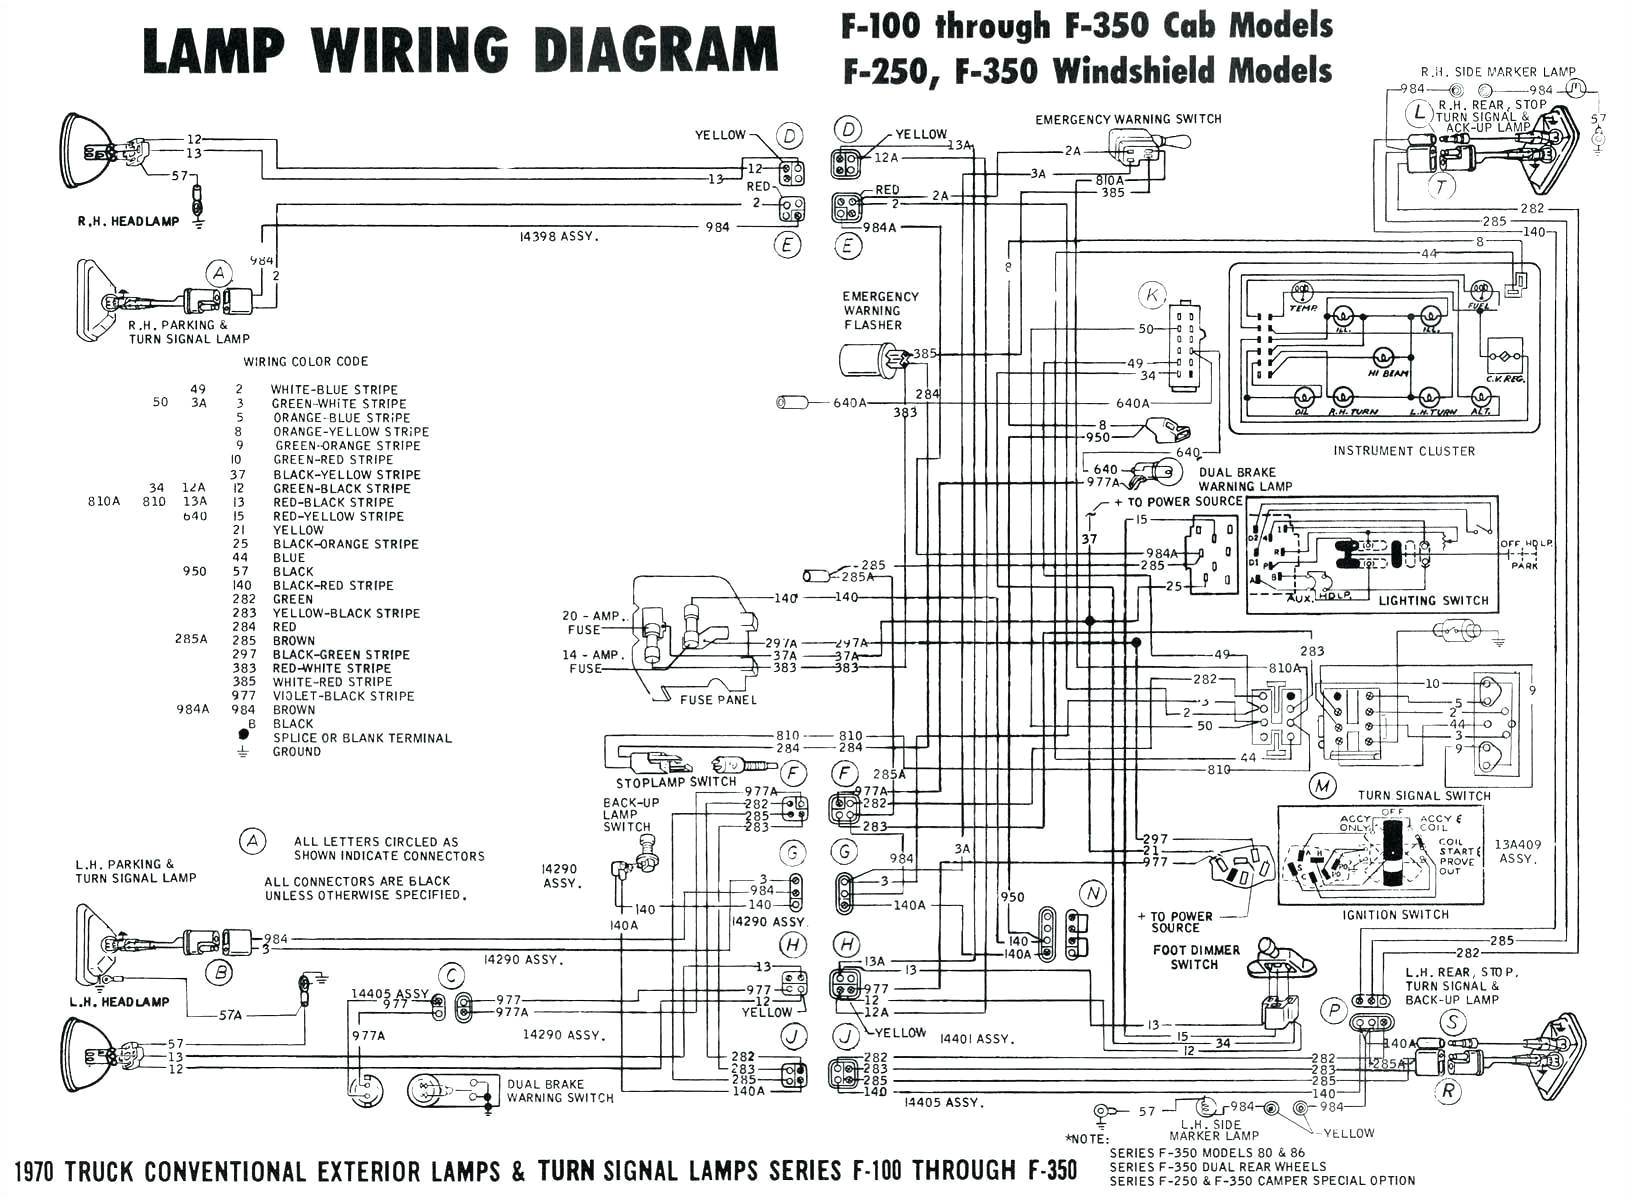 1996 audi a4 wiring schematic manual e book 1996 audi a4 wiring schematic